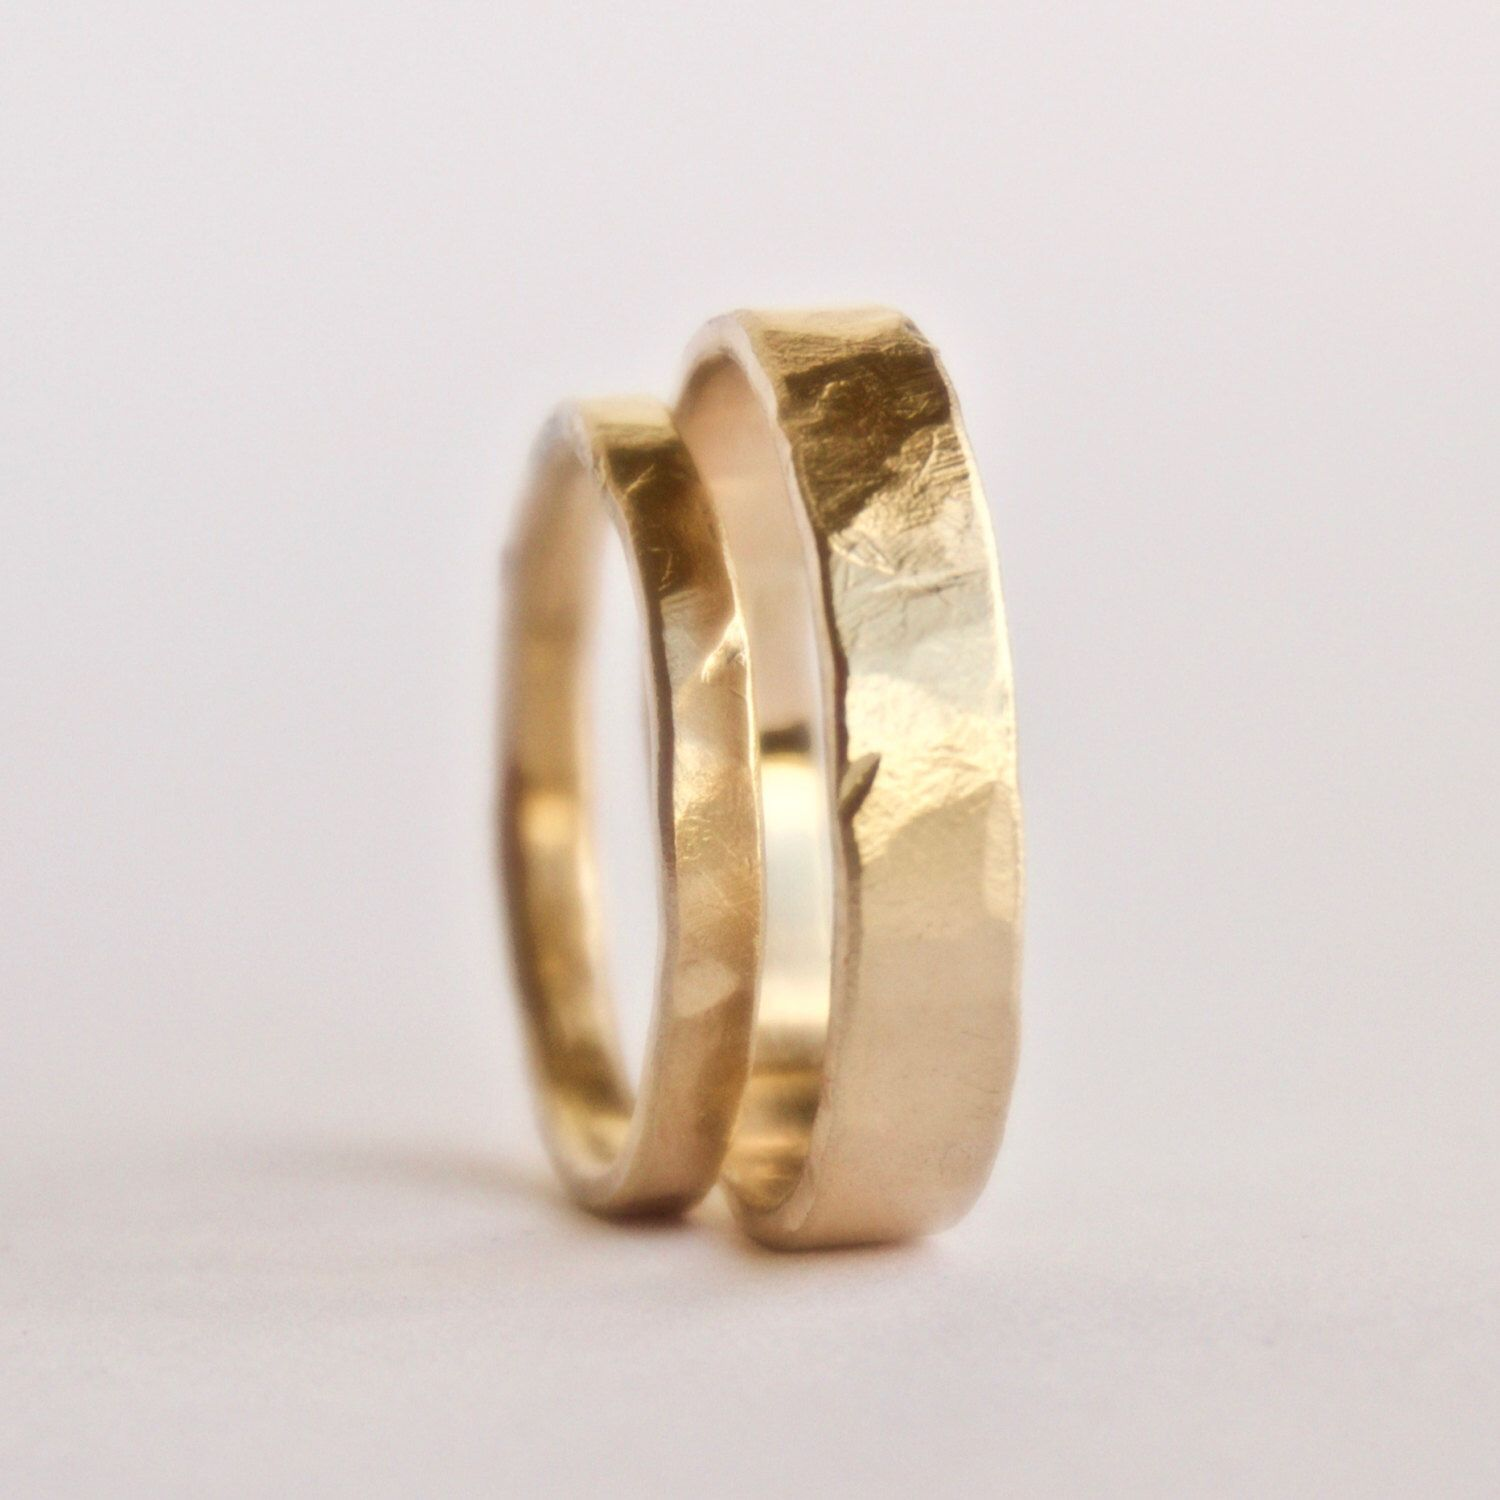 Wedding Ring Set Two Hammered Gold Rings Rustic Textured 18 Carat